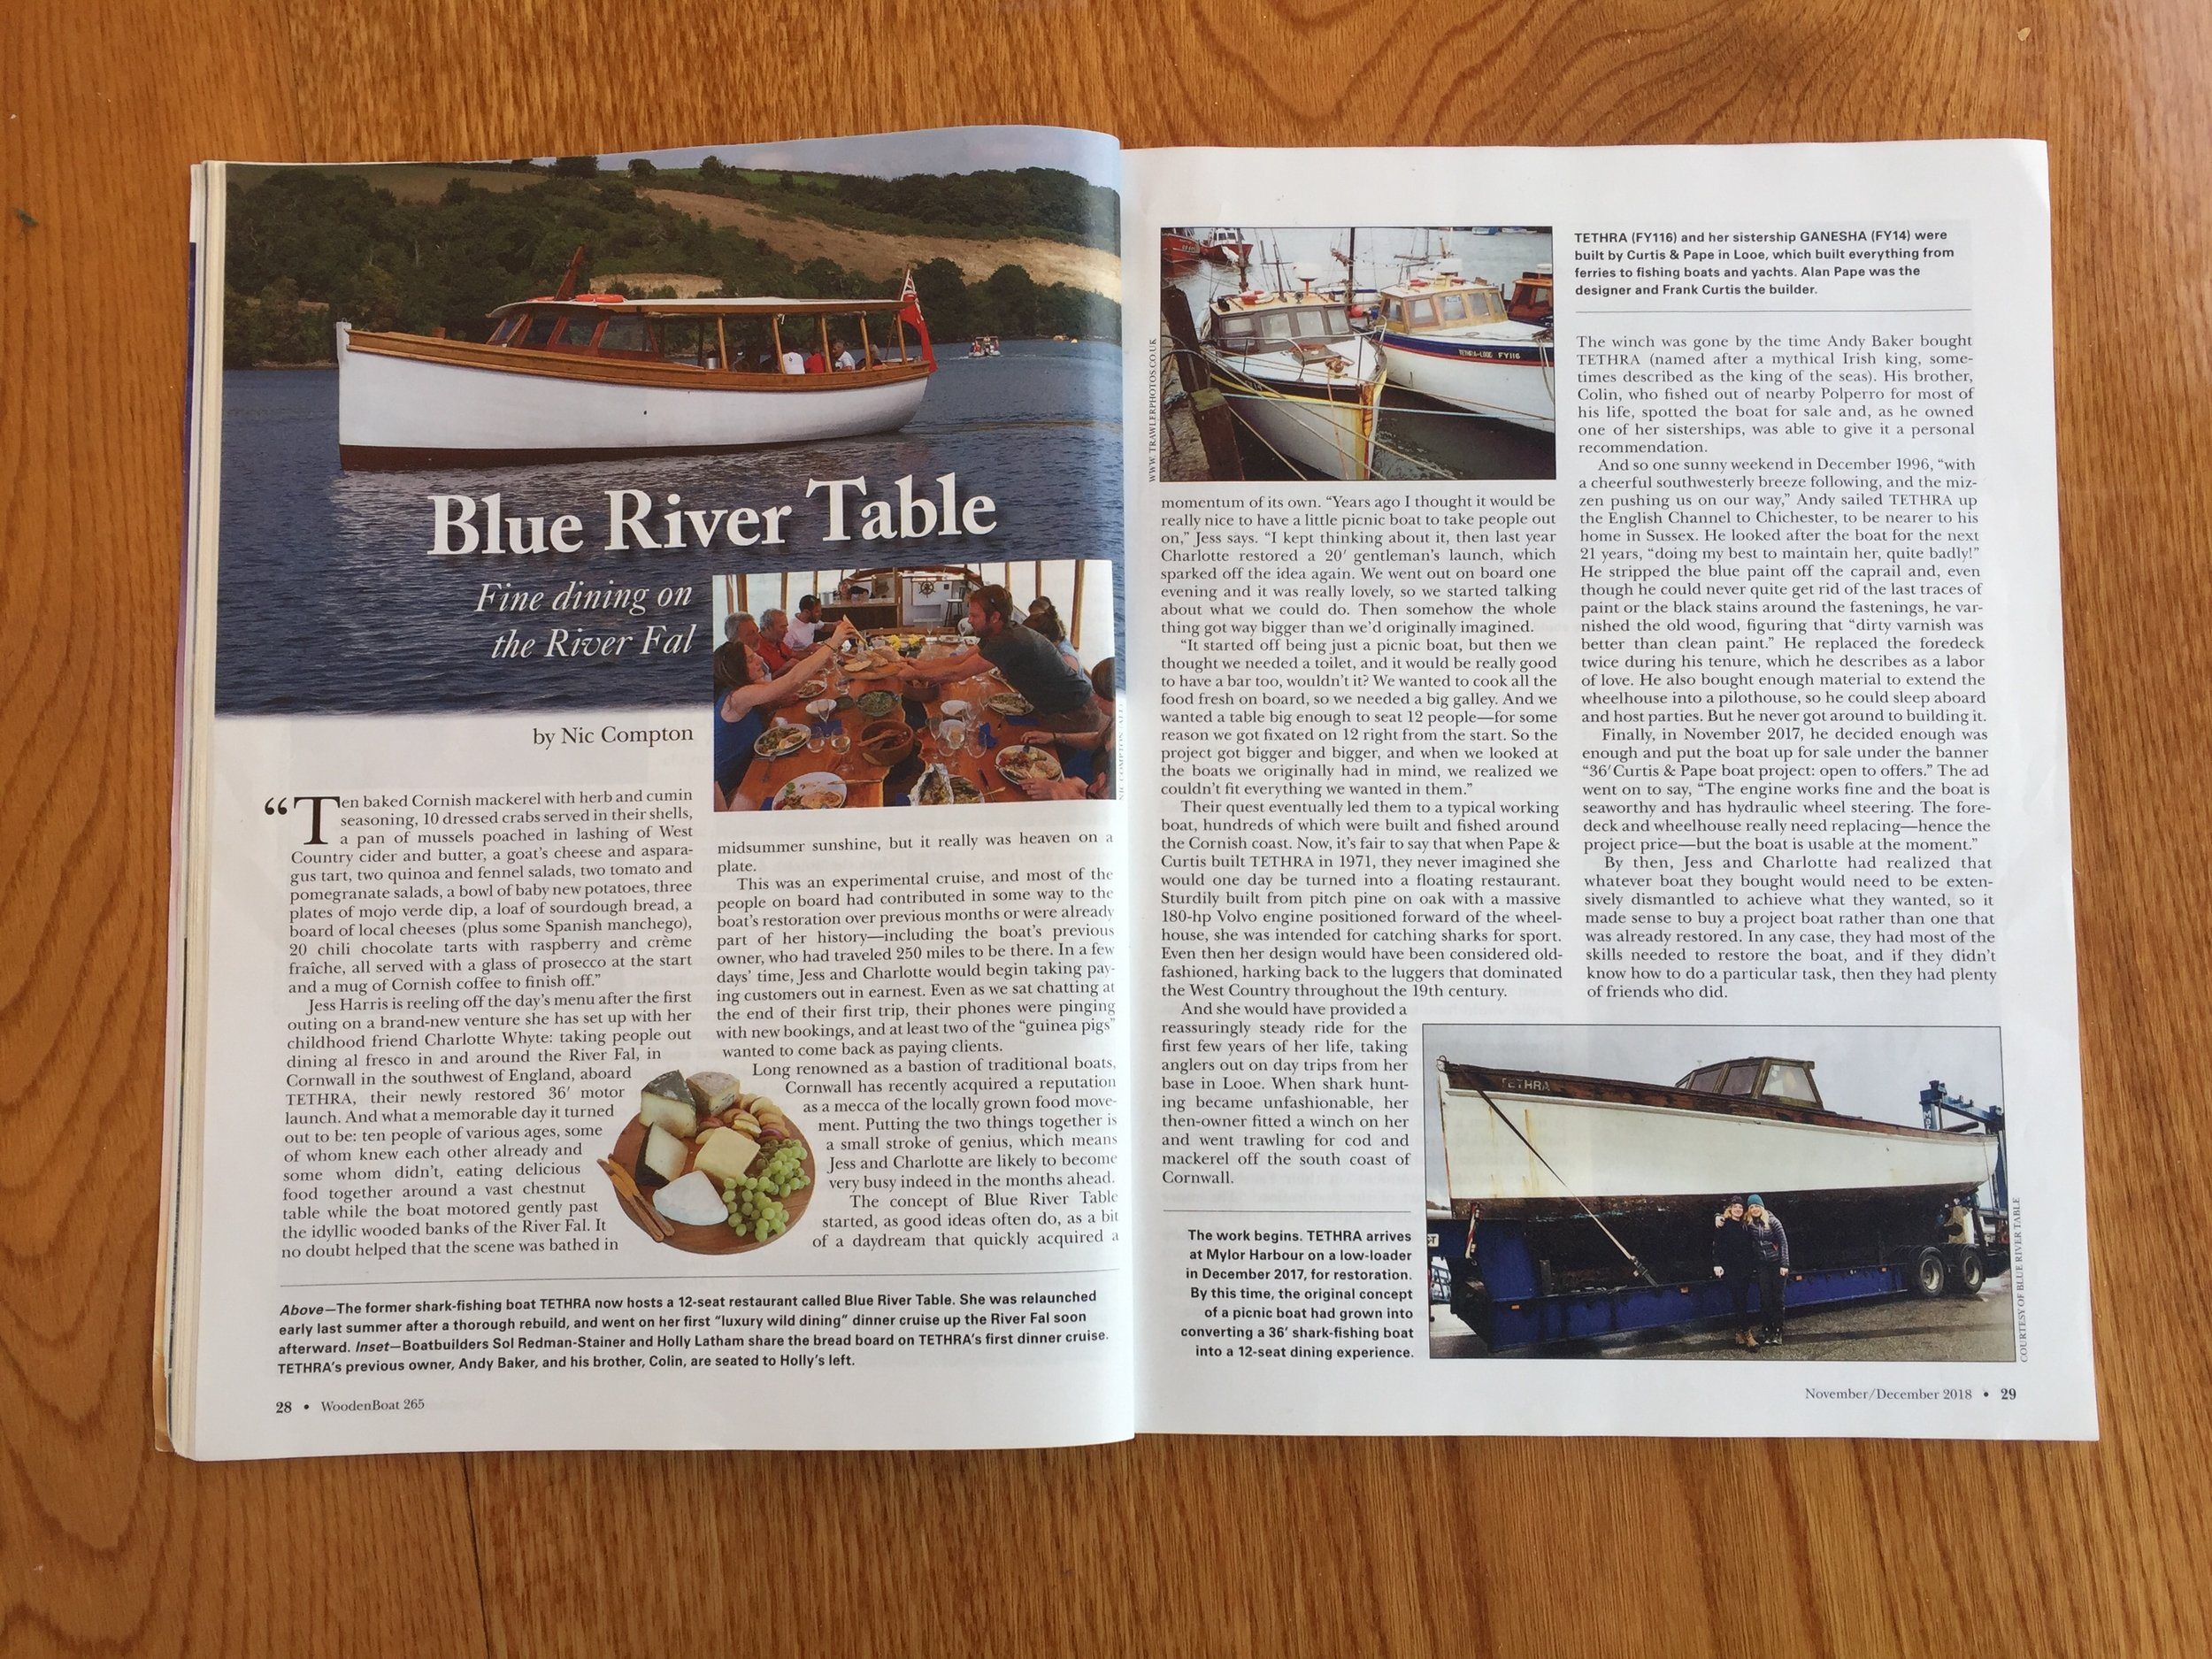 Wooden Boat Article - November/December 2018 issue in wooden boat magazine, the story of the rebuild and start of Blue River Table.